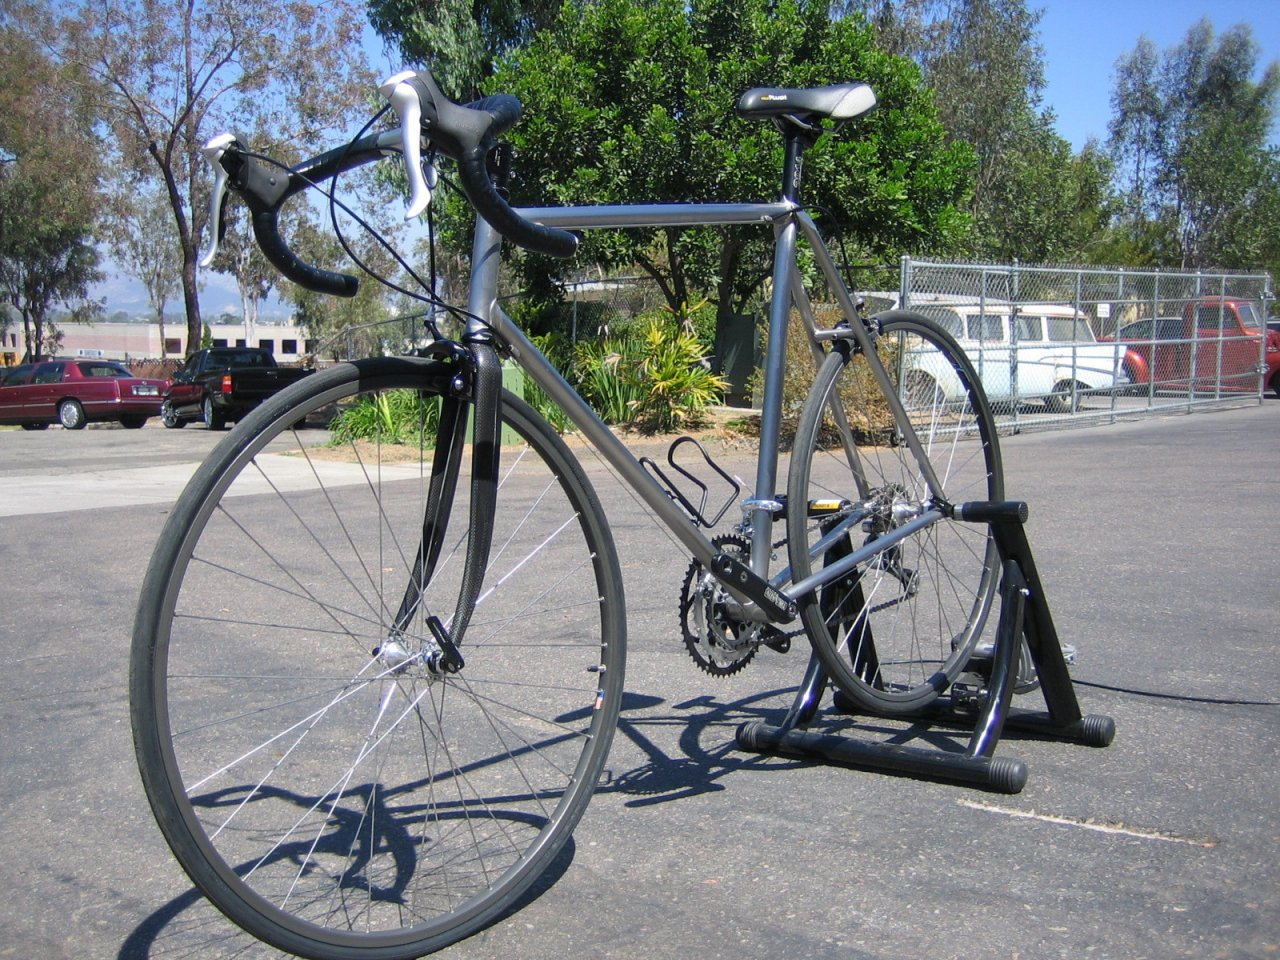 <h2><b>KVA Stainless Steel Bicycle</h2></b> - General Photos